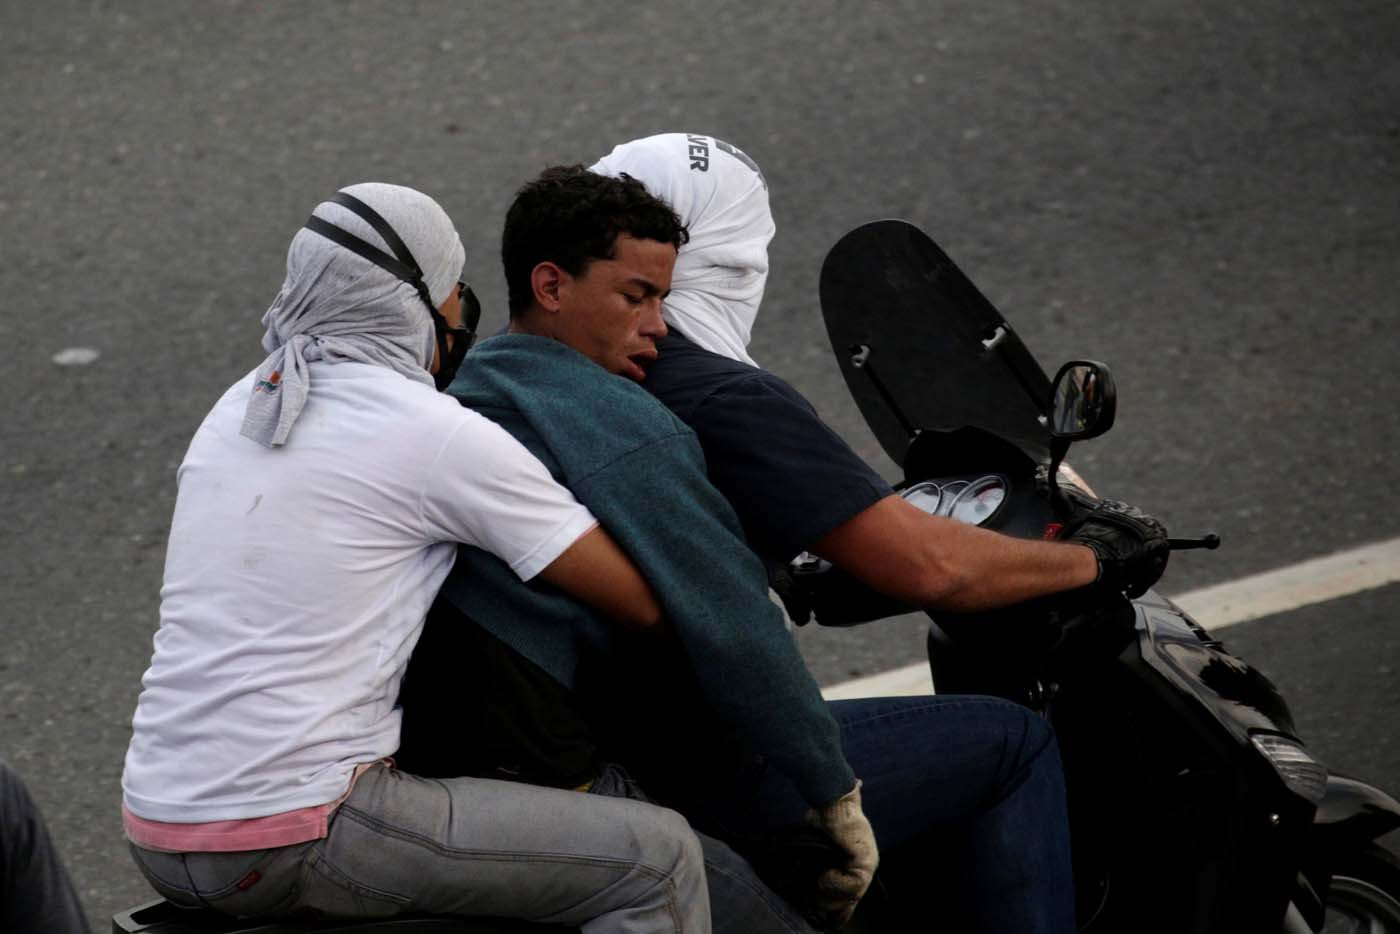 An injured opposition supporter is helped by others during a rally against President Nicolas Maduro in Caracas, Venezuela, May 8, 2017. REUTERS/Marco Bello